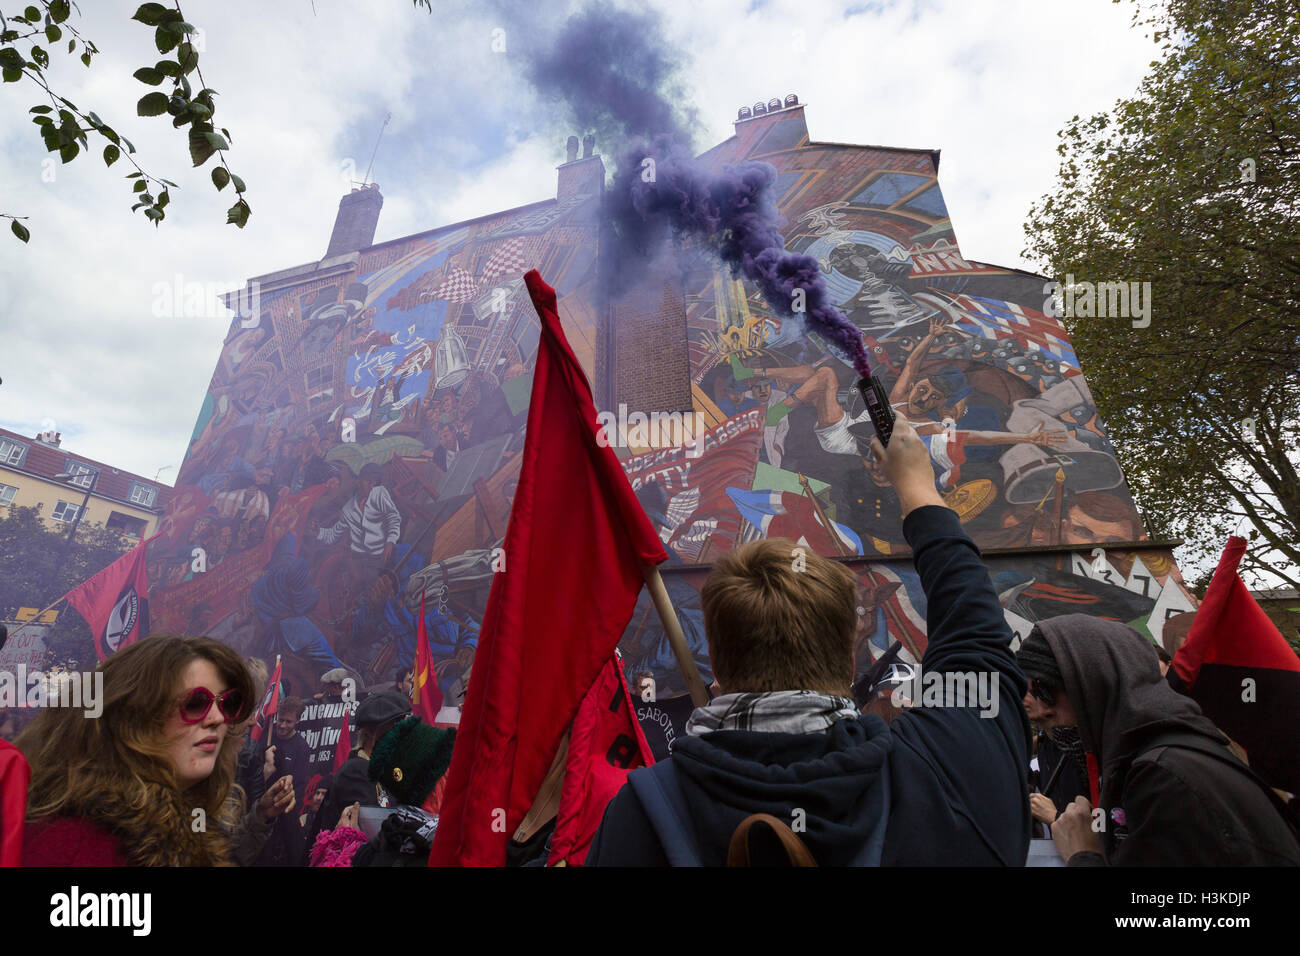 London, UK. 9th October 2016. Anarchists and anti-fascists let off smoke flares at the Cable Street Mural during - Stock Image